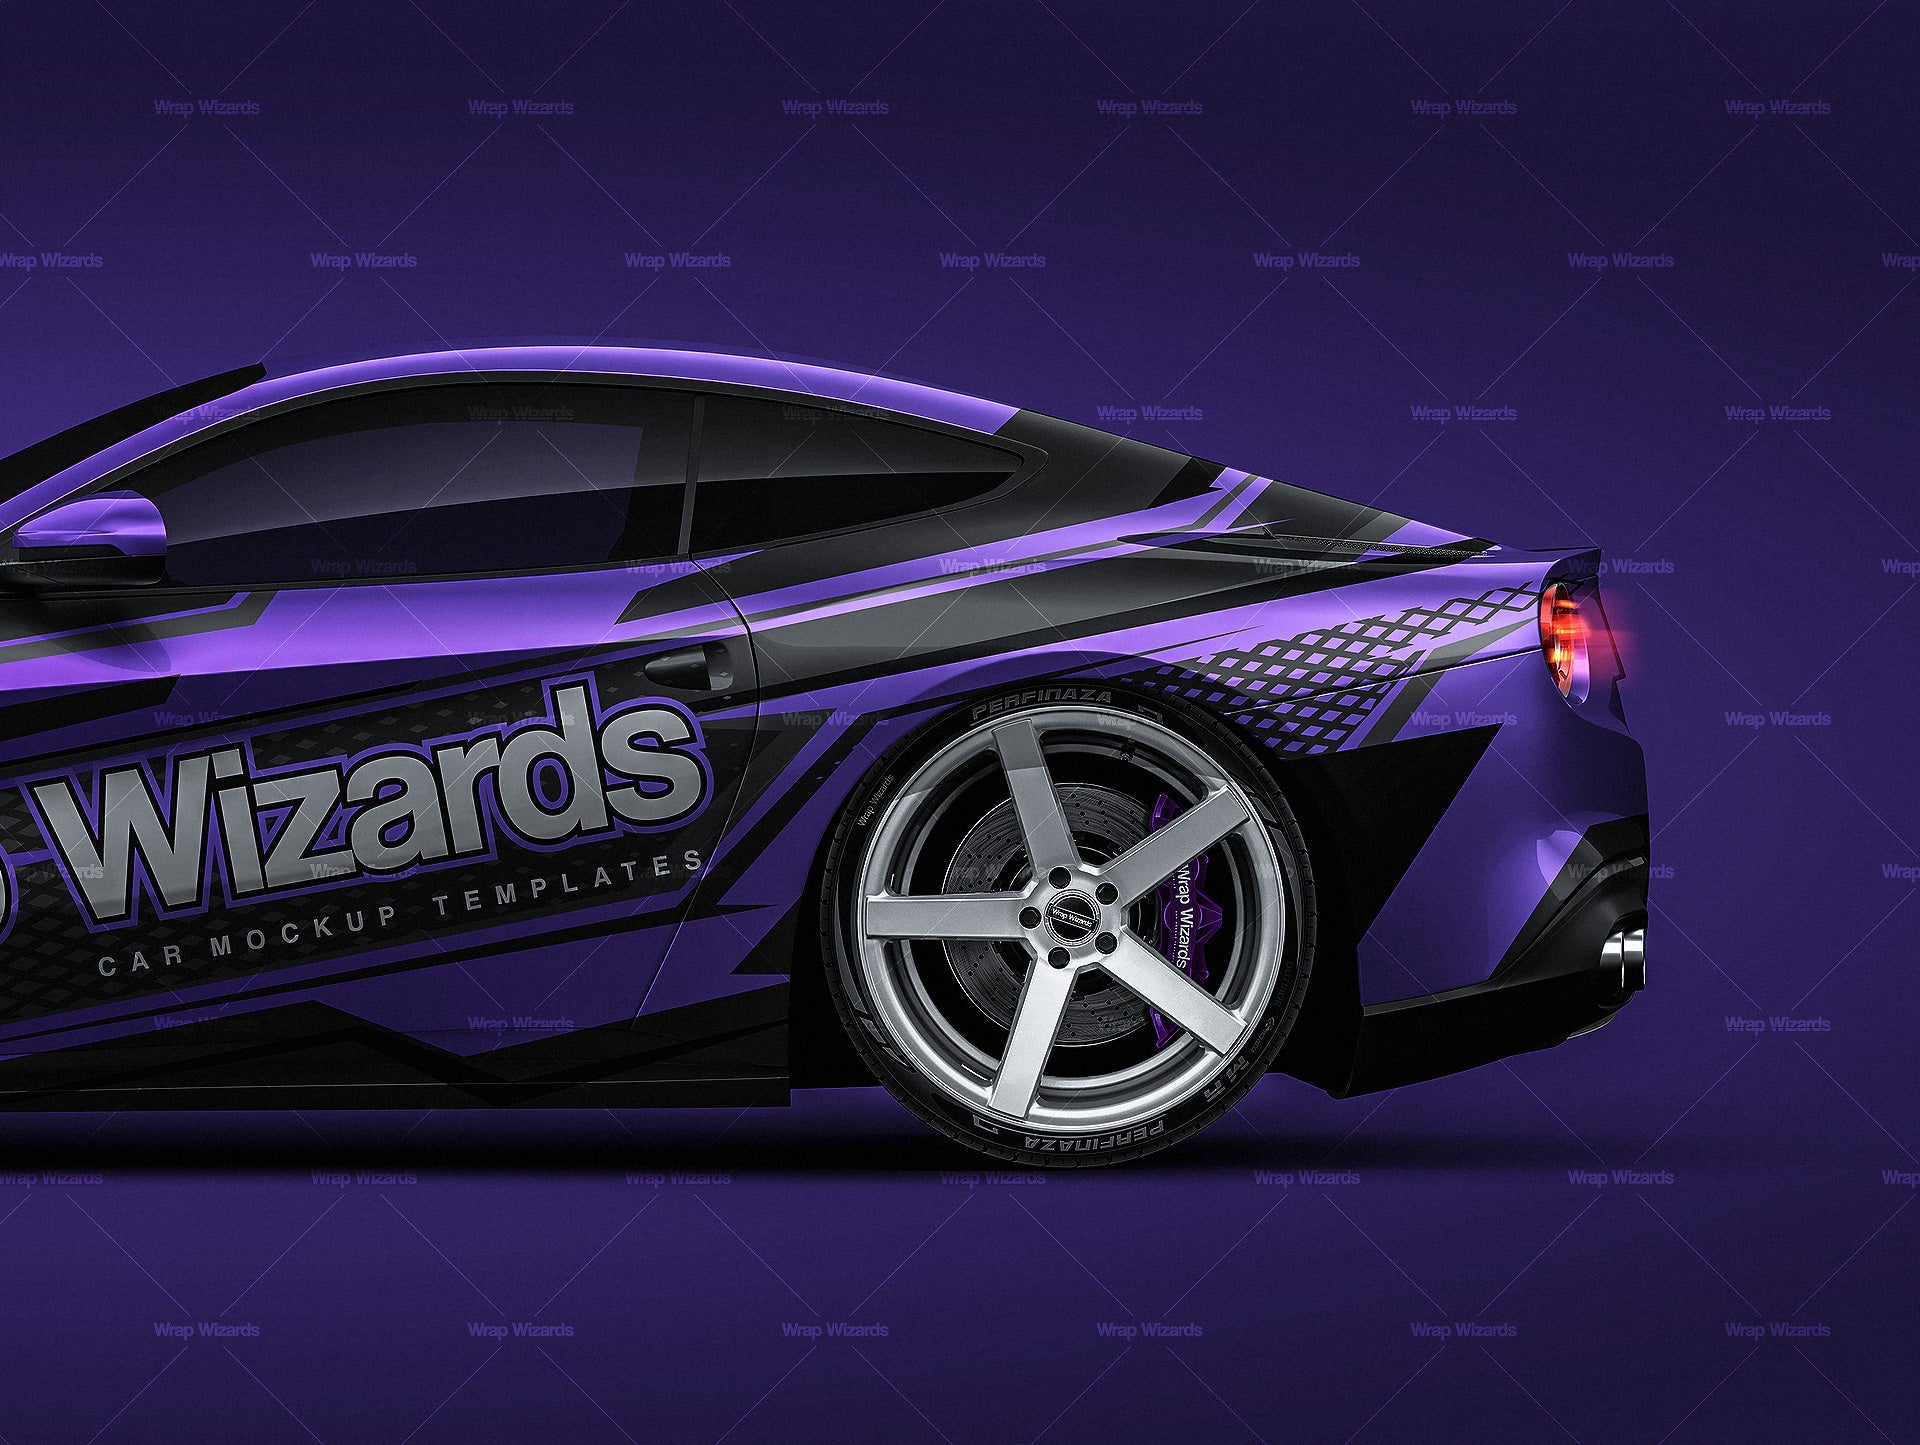 Ferrari F12 2015 - all sides Car Mockup Template.psd